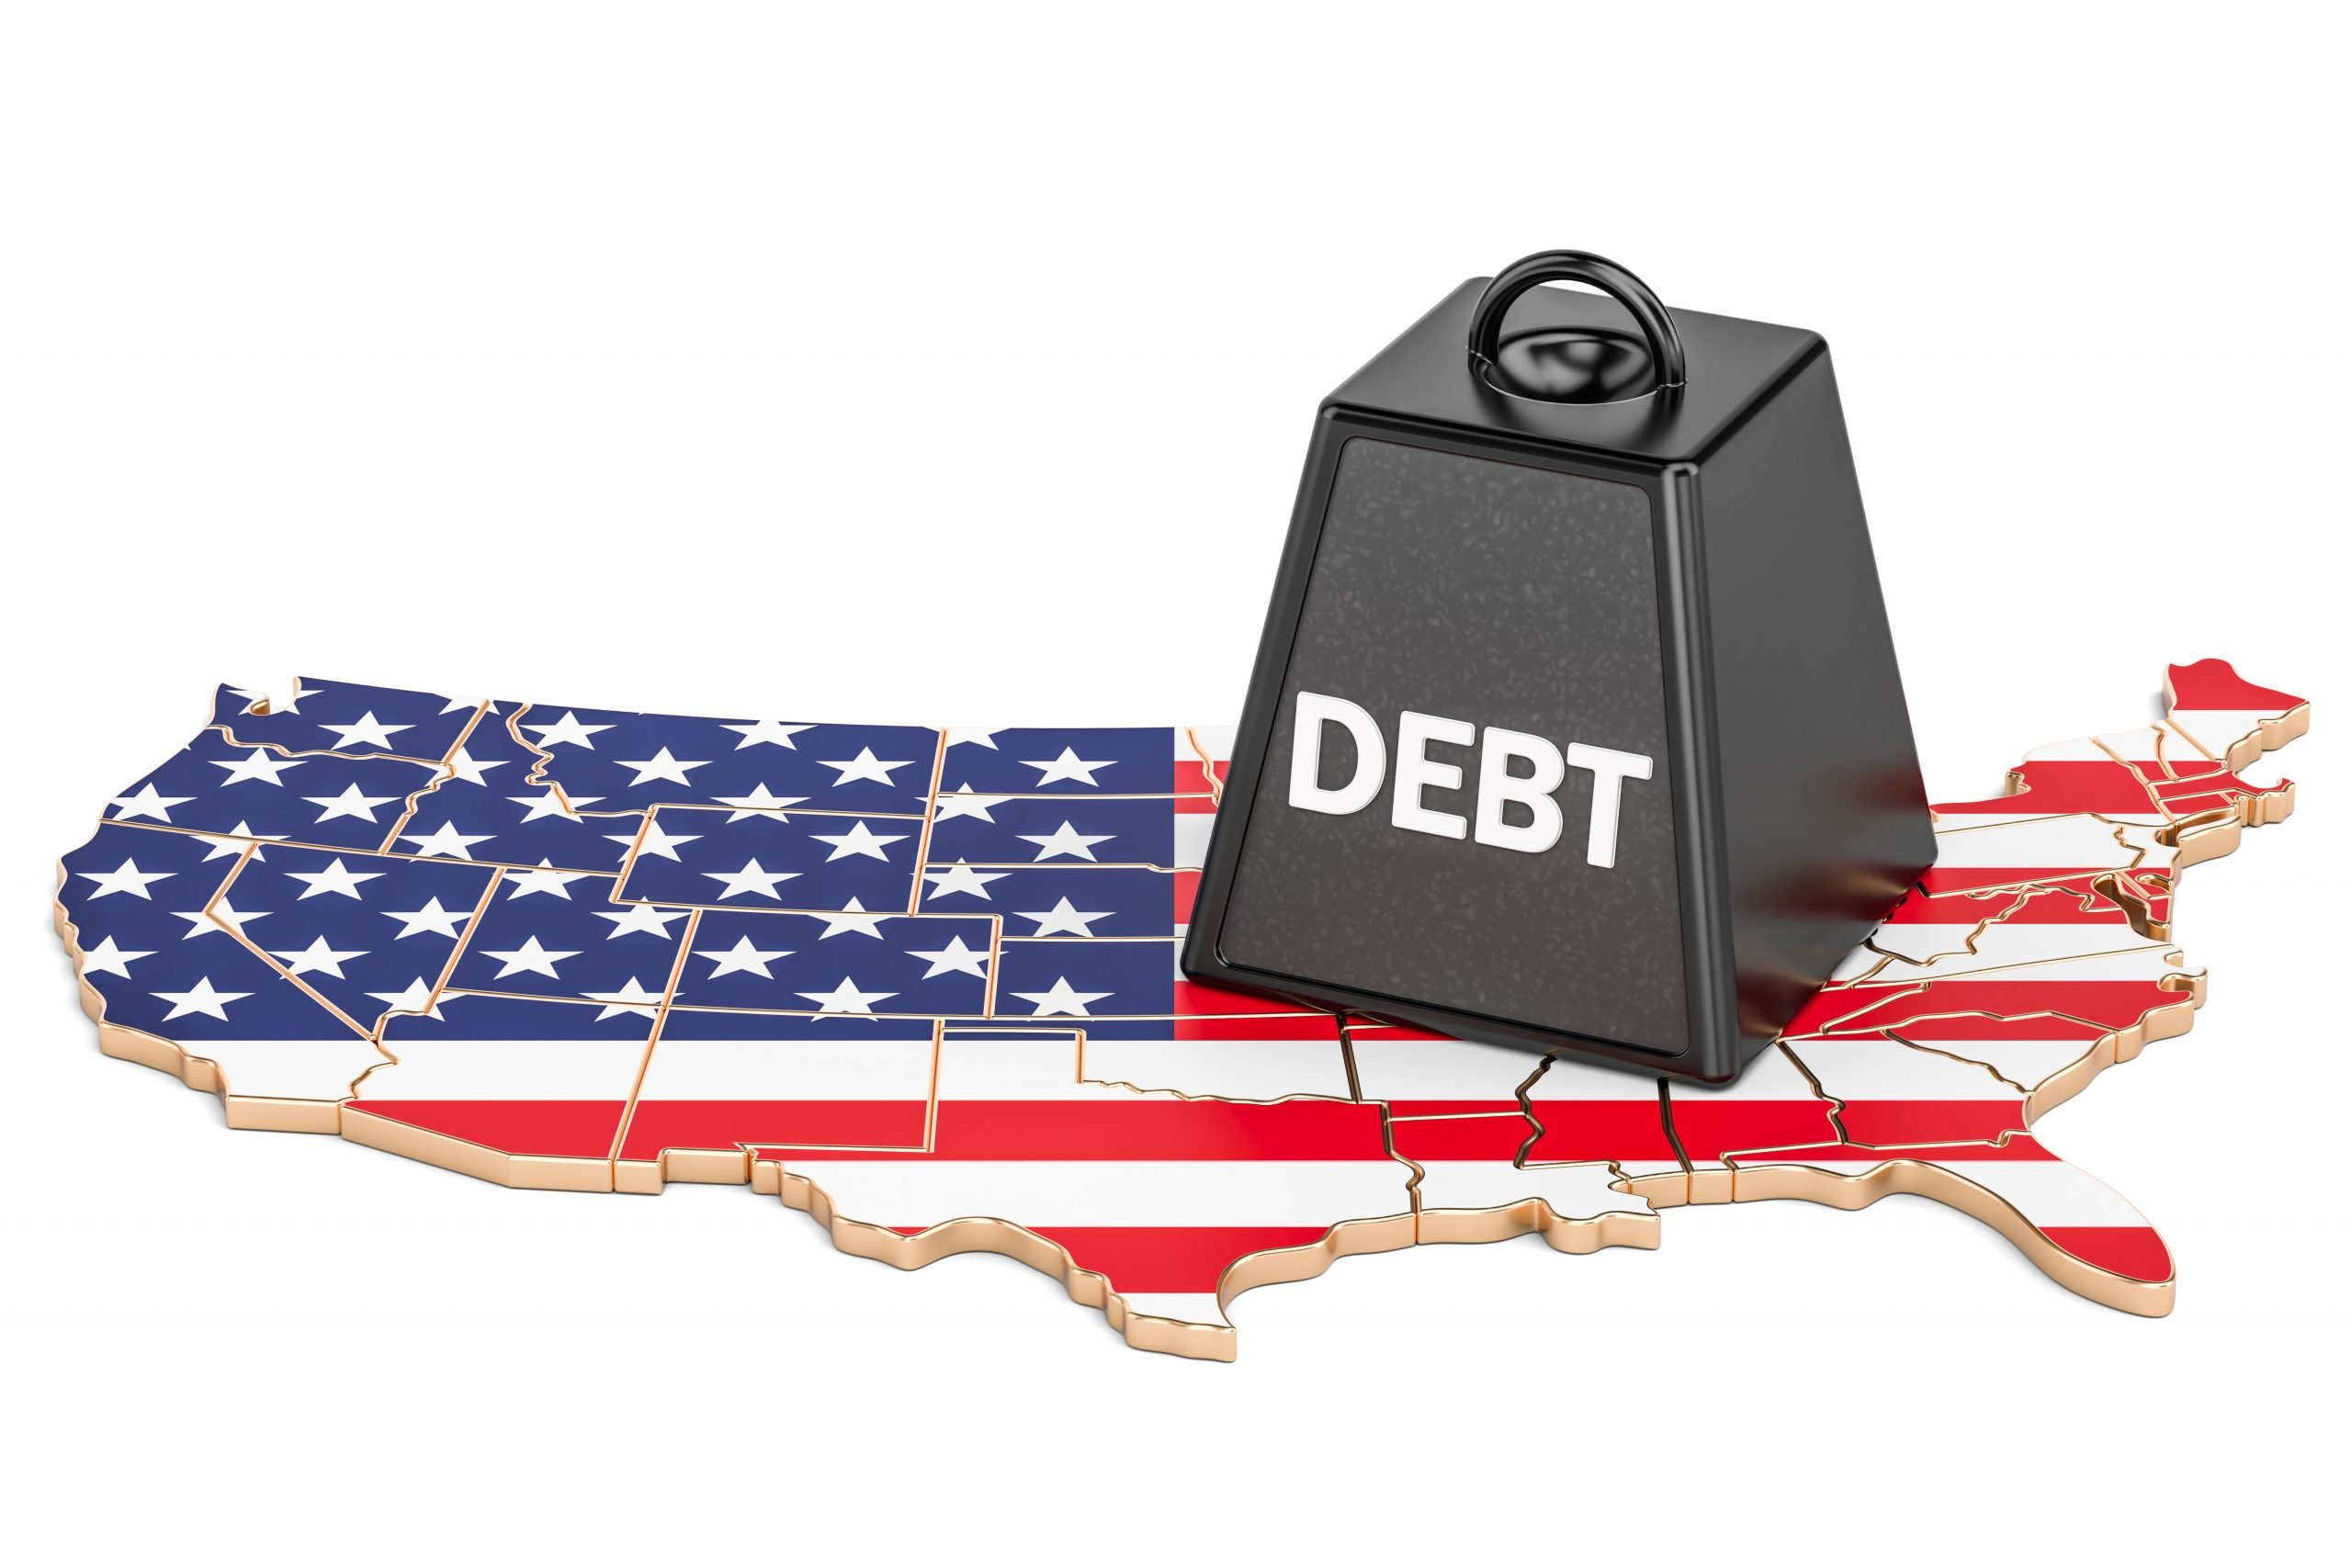 Why the National Debt Threatens Our Future